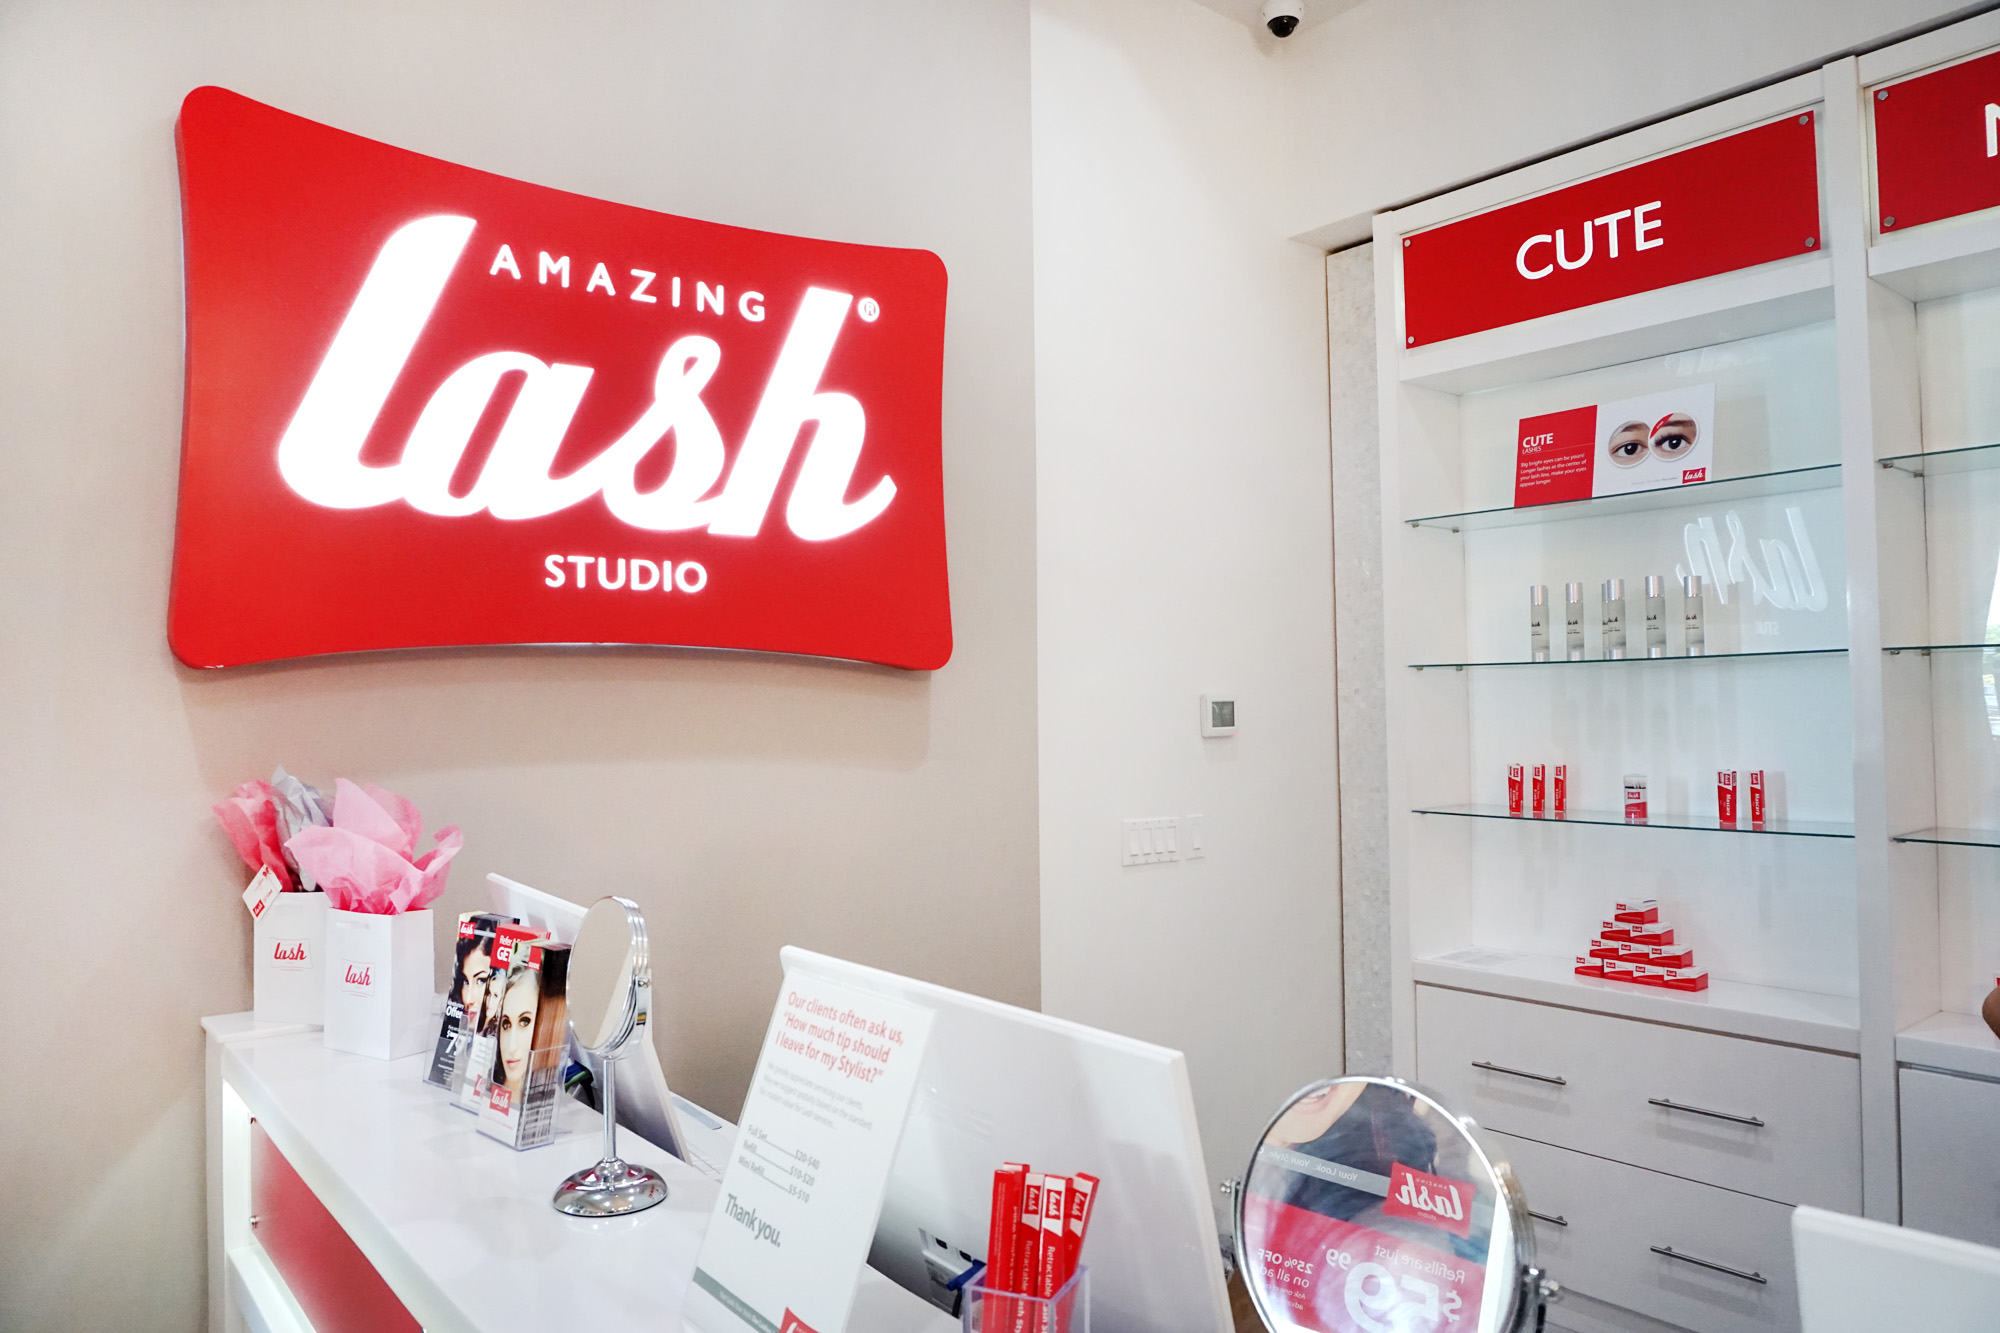 Amazing Lash Studio Review